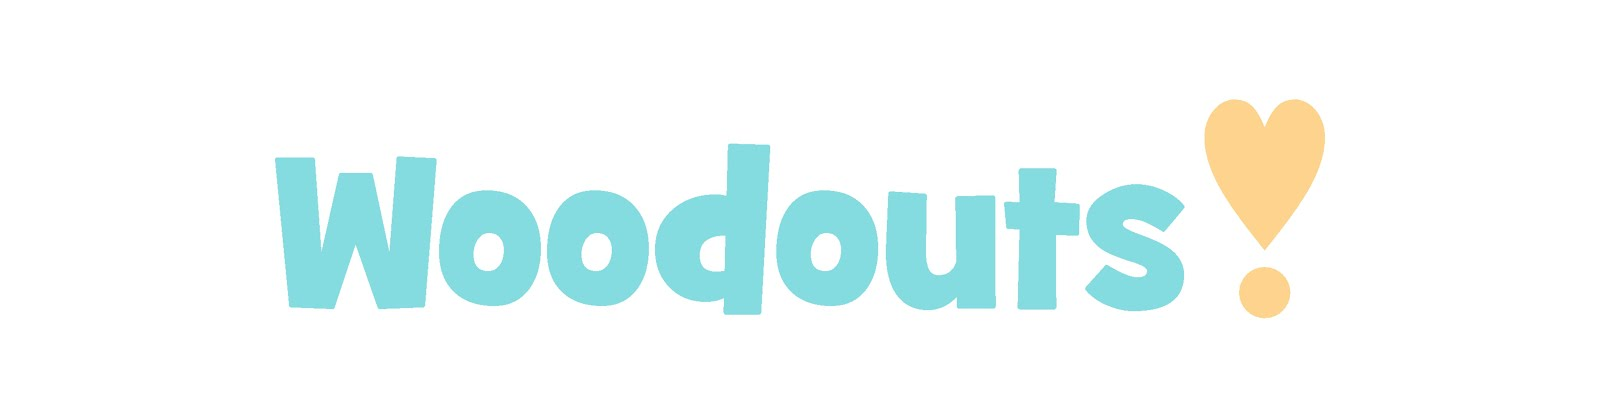 woodouts